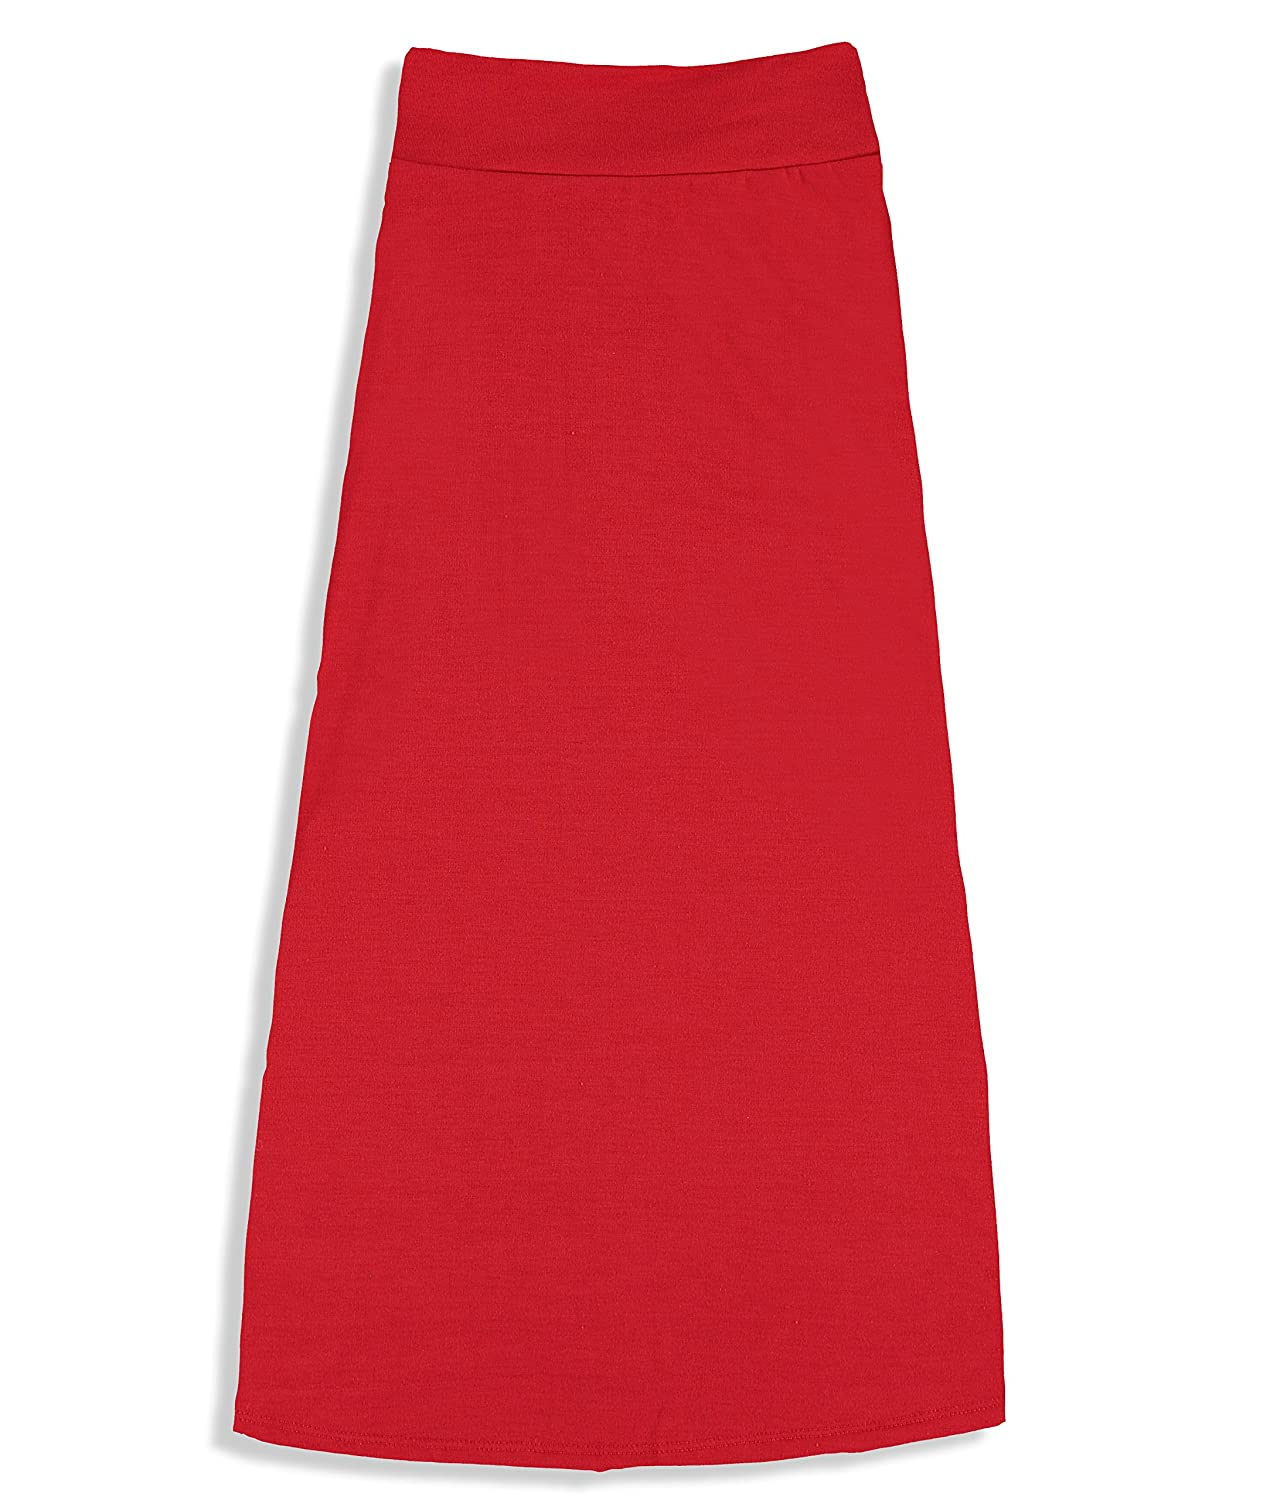 Great for Uniform Free to Live Girls 7-16 Years Old Maxi Skirts